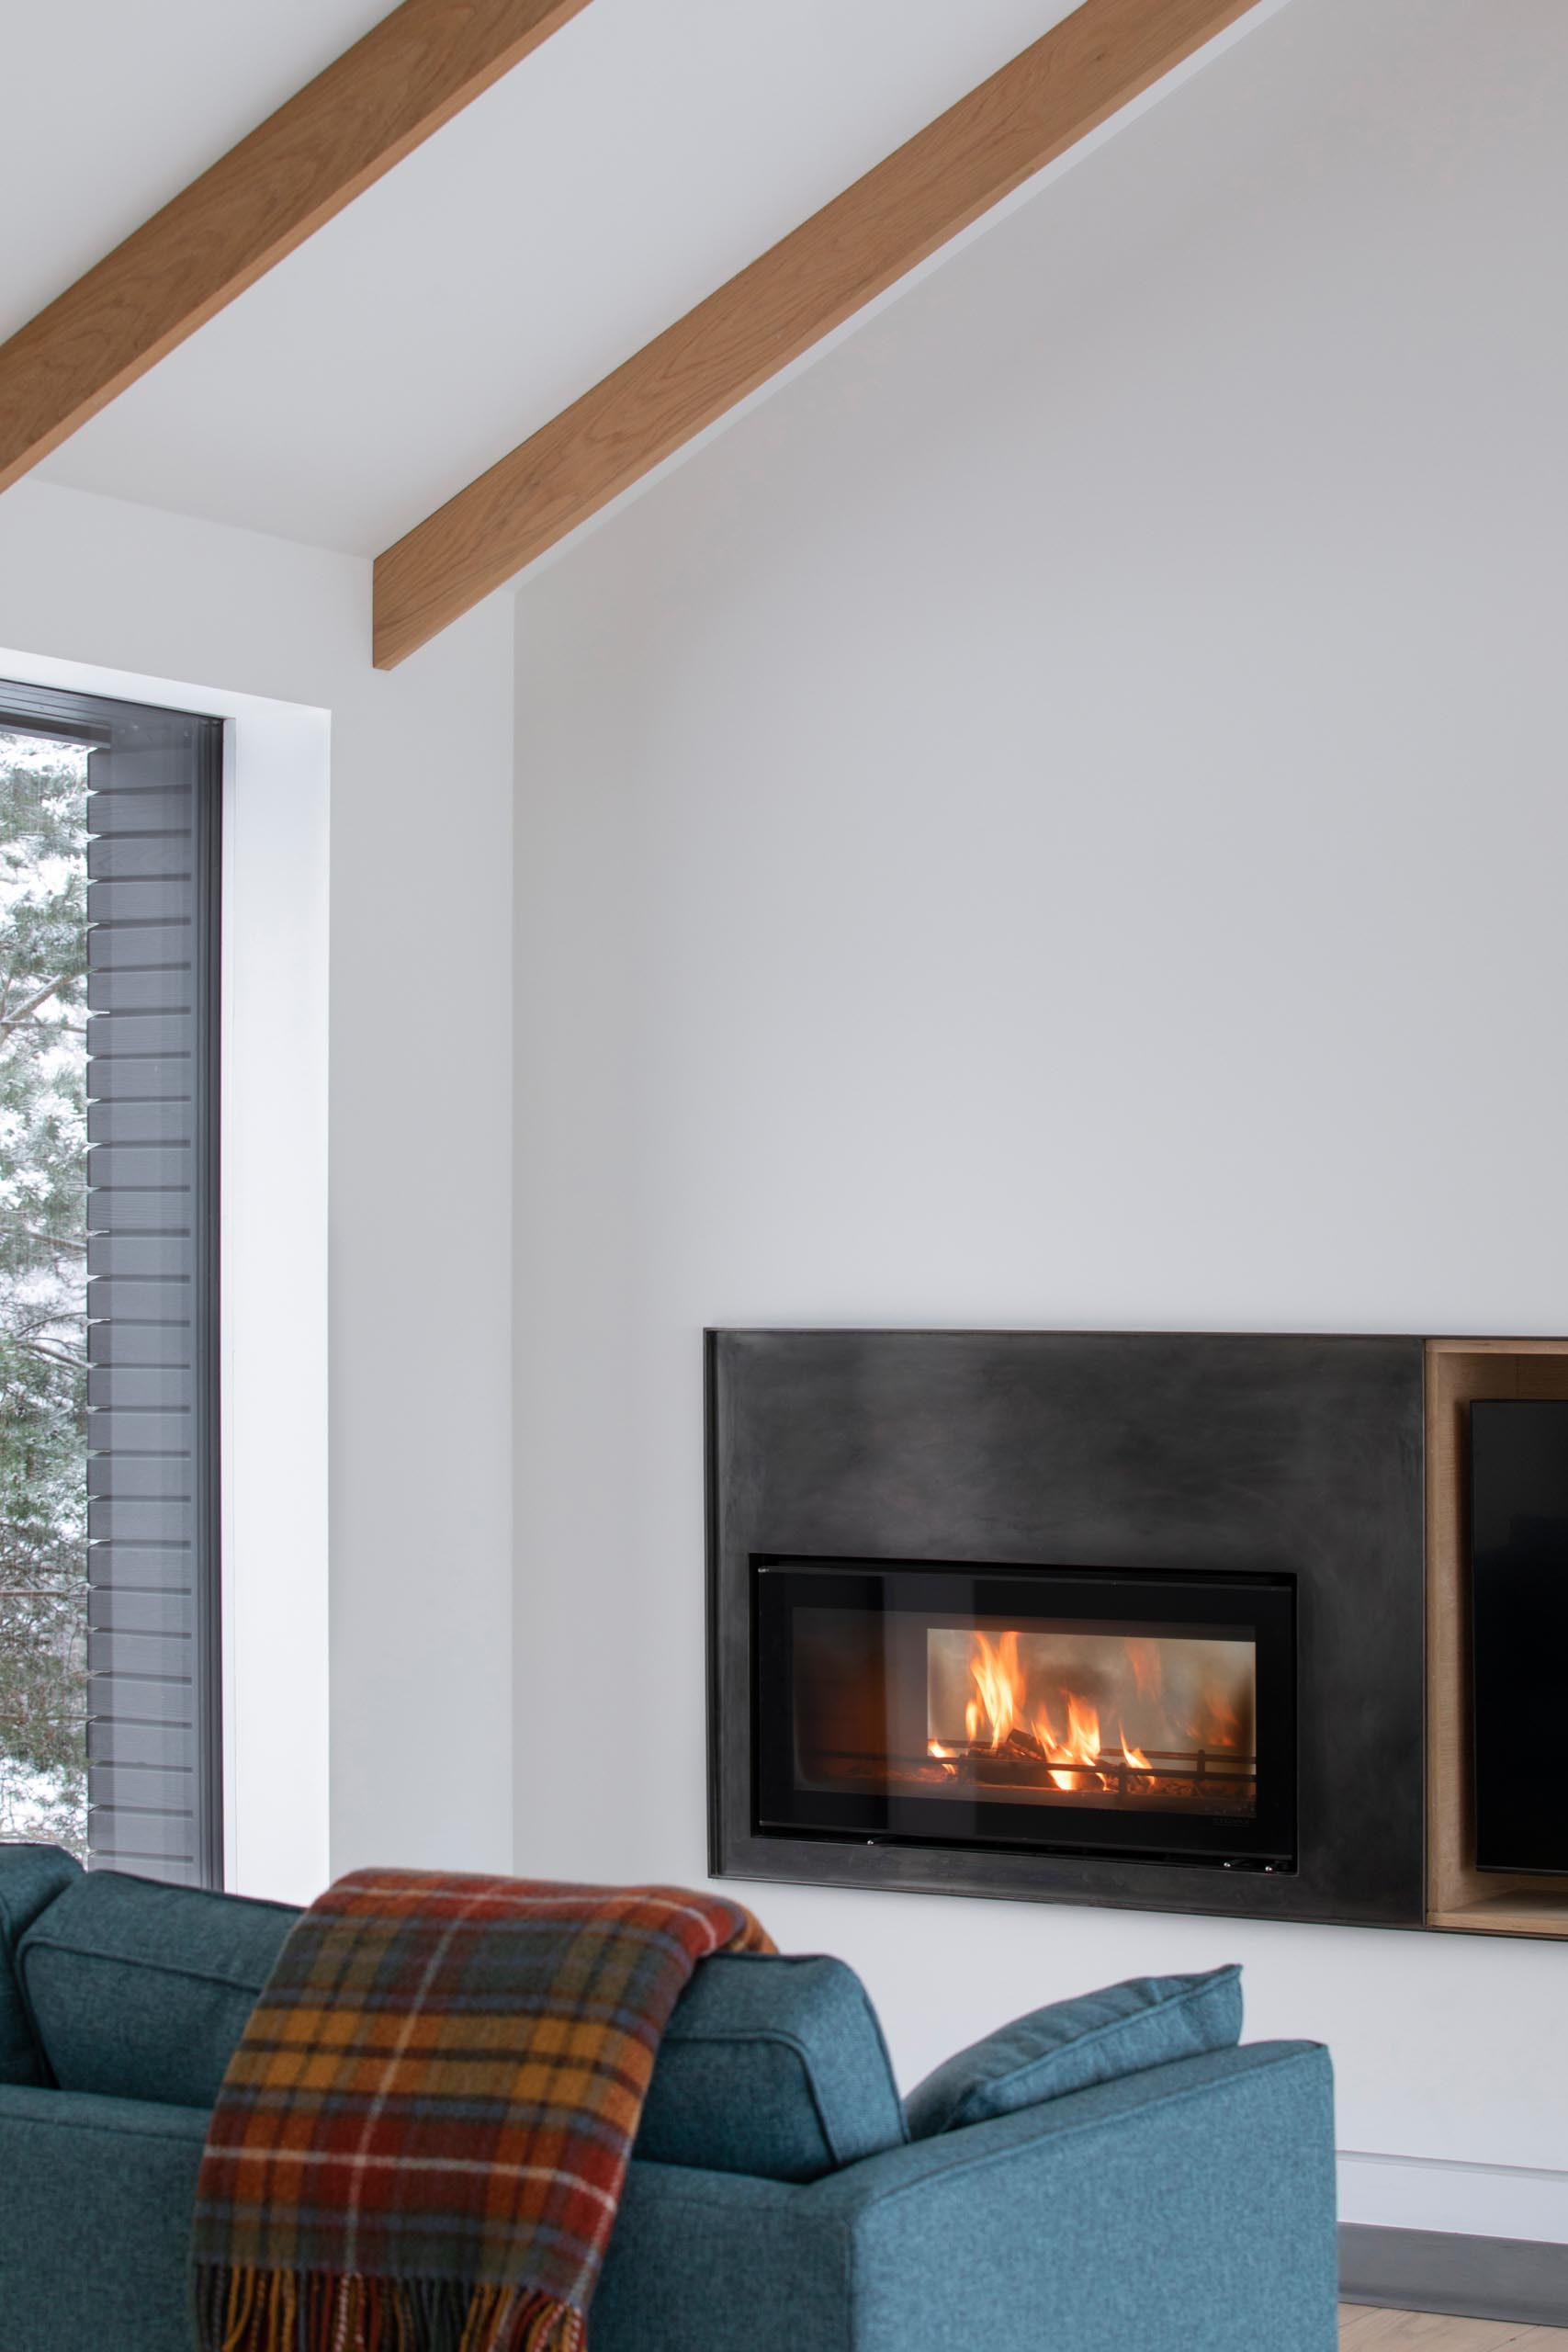 A modern living room with a steel fireplace surround.